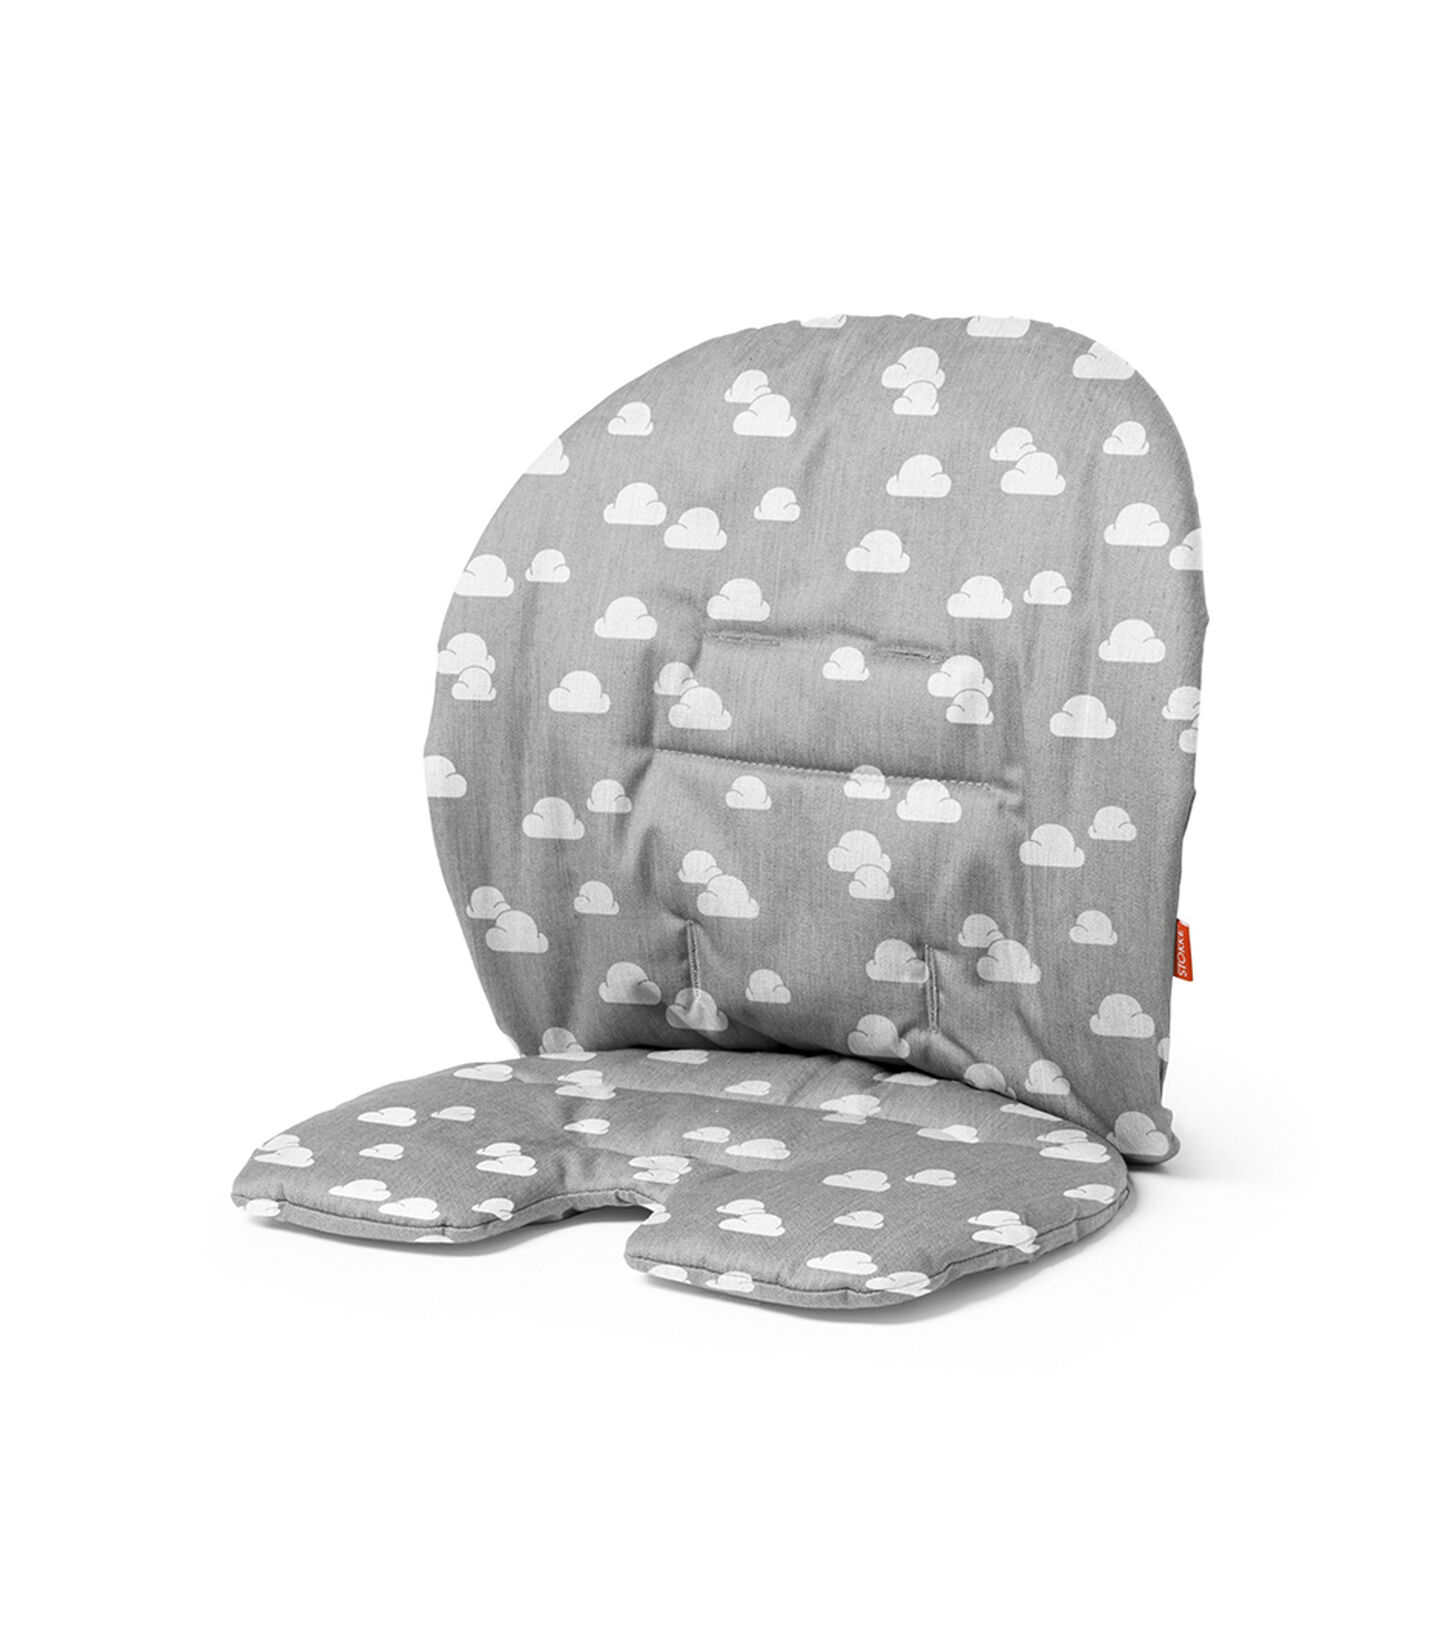 Stokke® Steps™ Baby Set Kissen Grey Clouds, Grey Clouds, mainview view 2